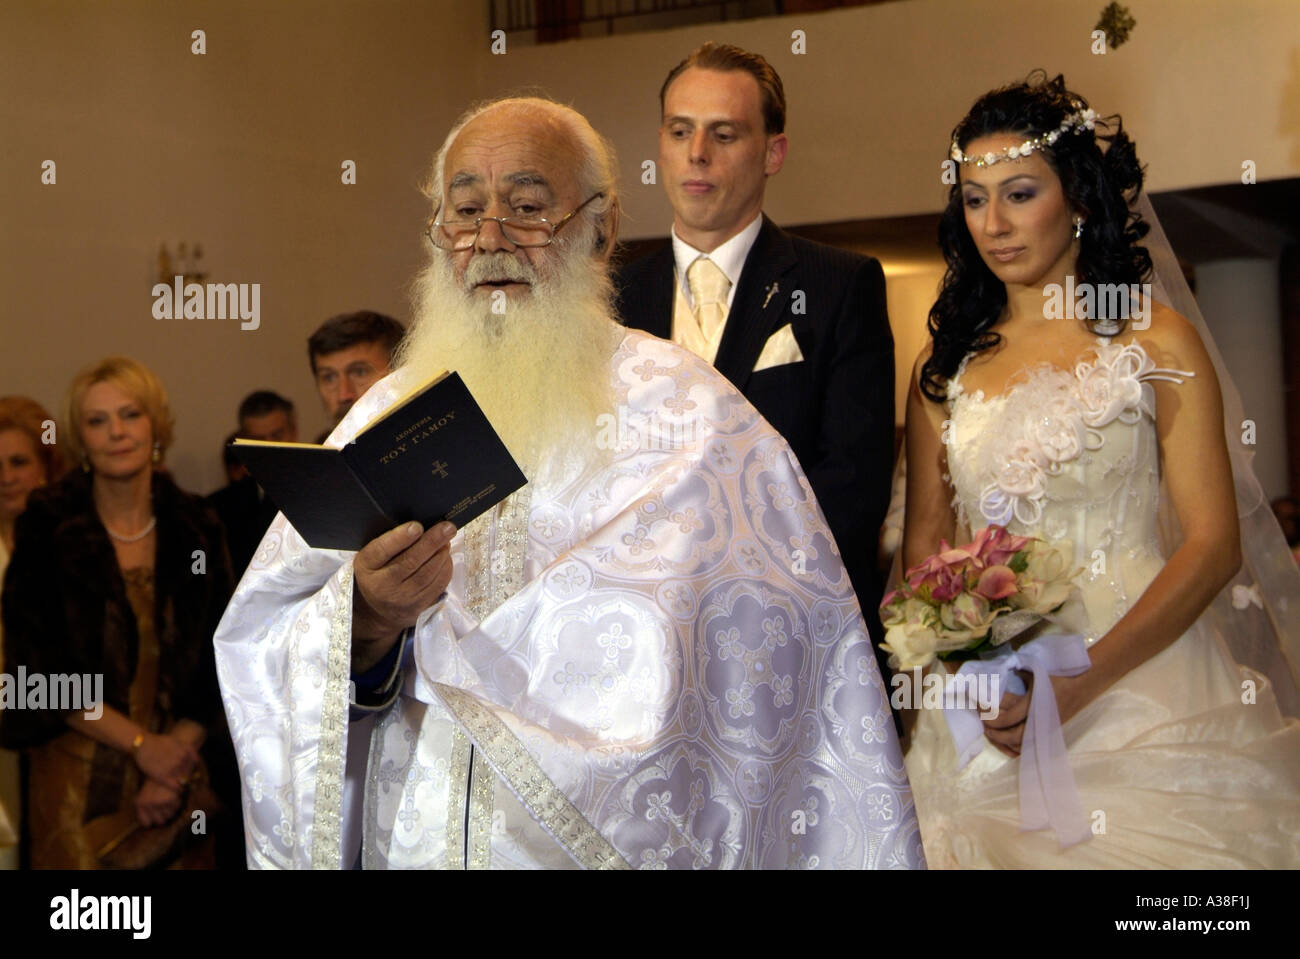 The Priest Reading From Bible During A Greek Orthodox Wedding Ceremony